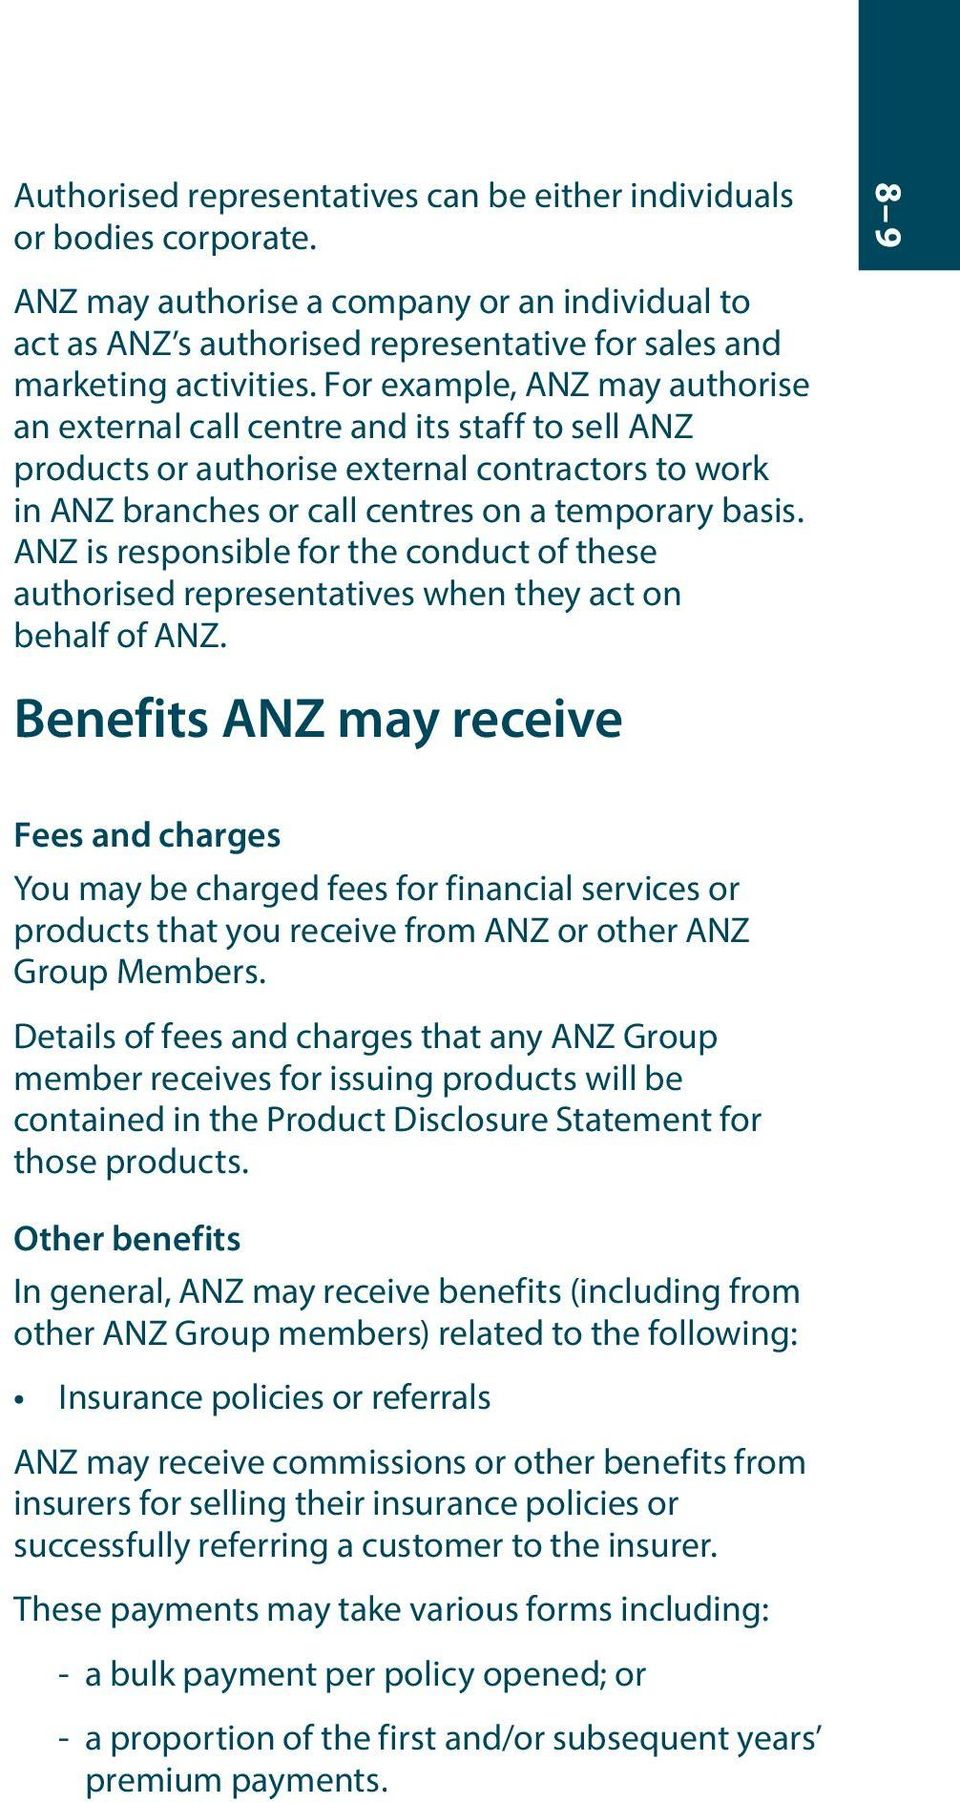 ANZ is responsible for the conduct of these authorised representatives when they act on behalf of ANZ.